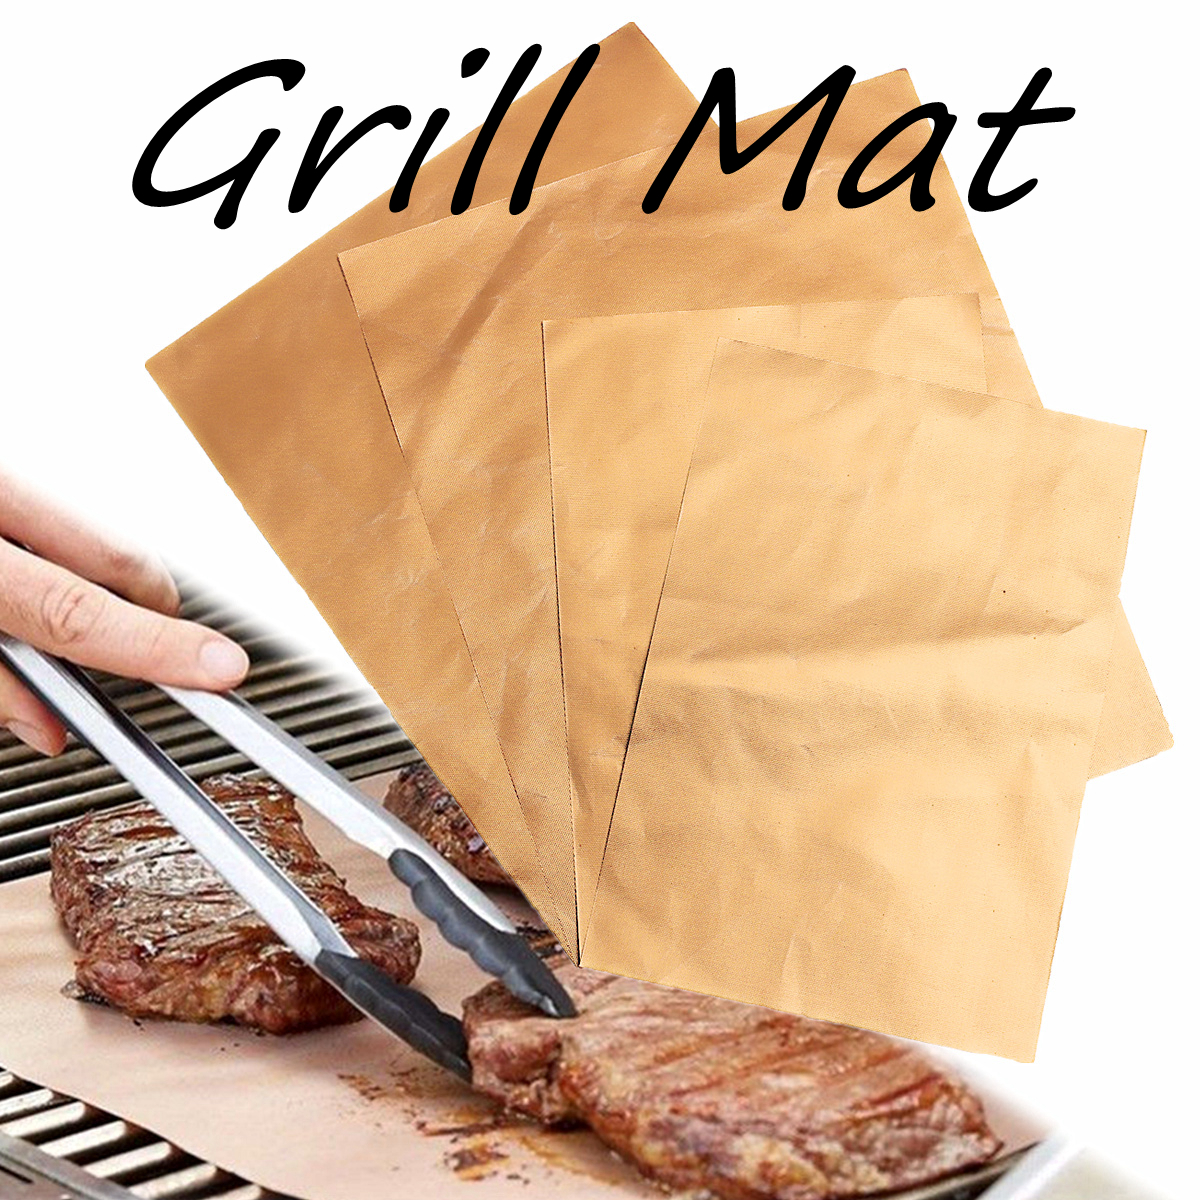 4x Reusable Thick PTFE Barbecue Grill Mat Copper Chef Non-stick BBQ Grill Mats Cooking & Baking Liner Barbecuing Grill Pad Sheet